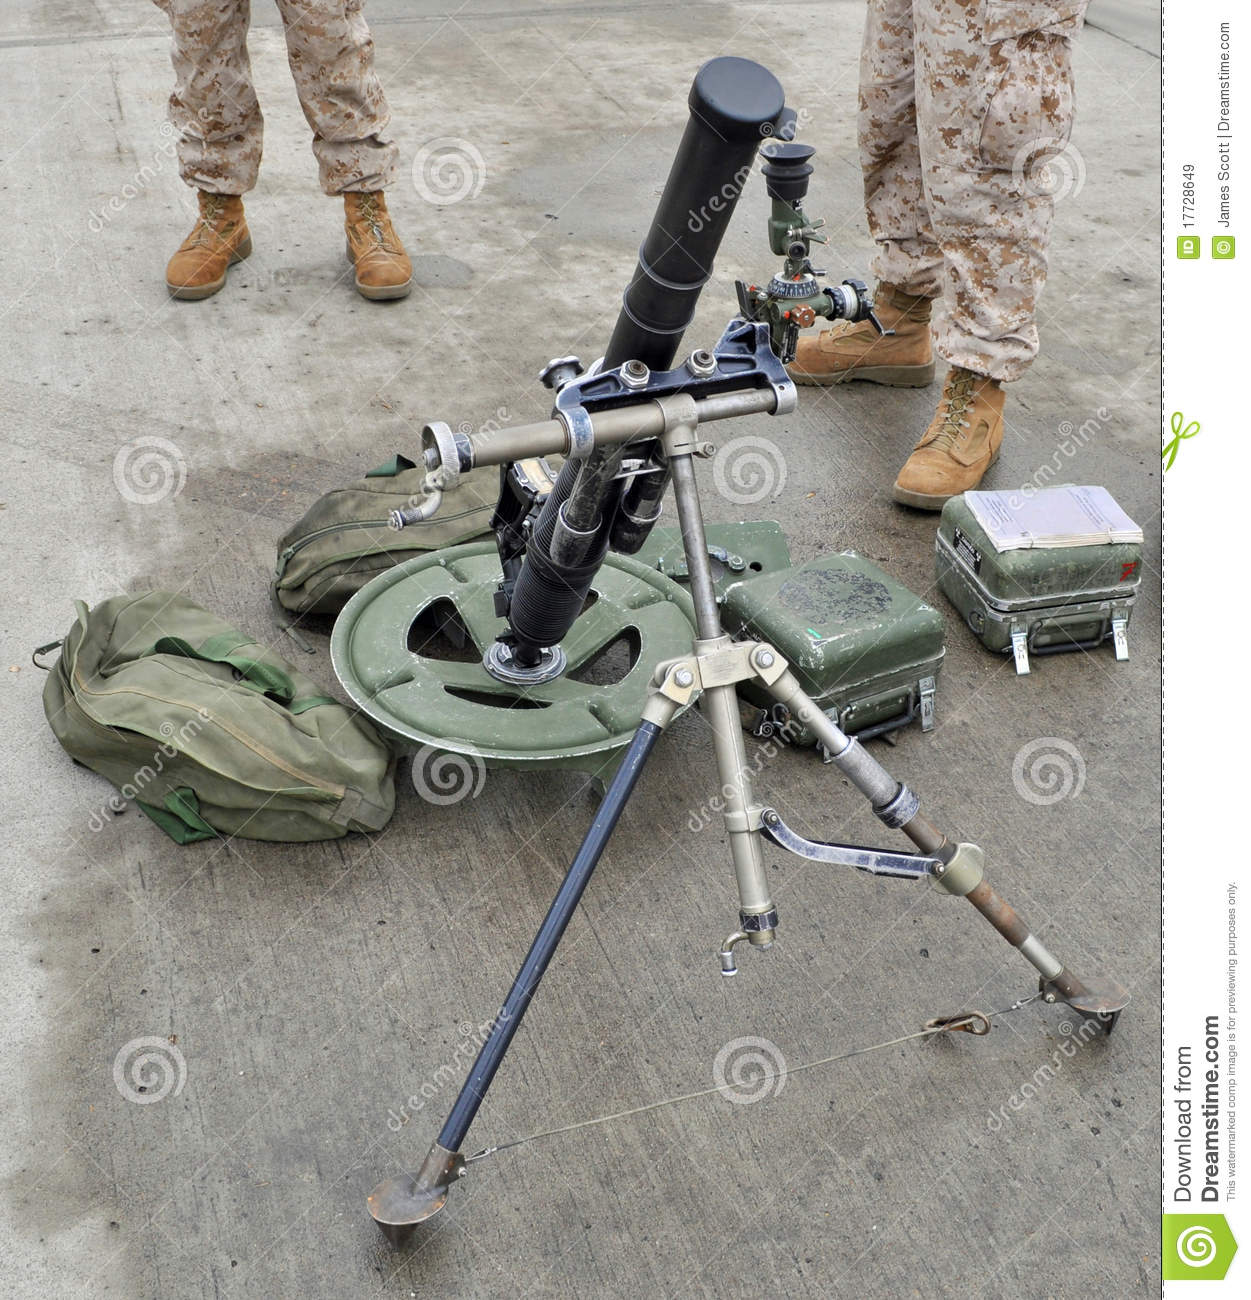 The U.S. Marine Corps Lightweight M224 Mortar.